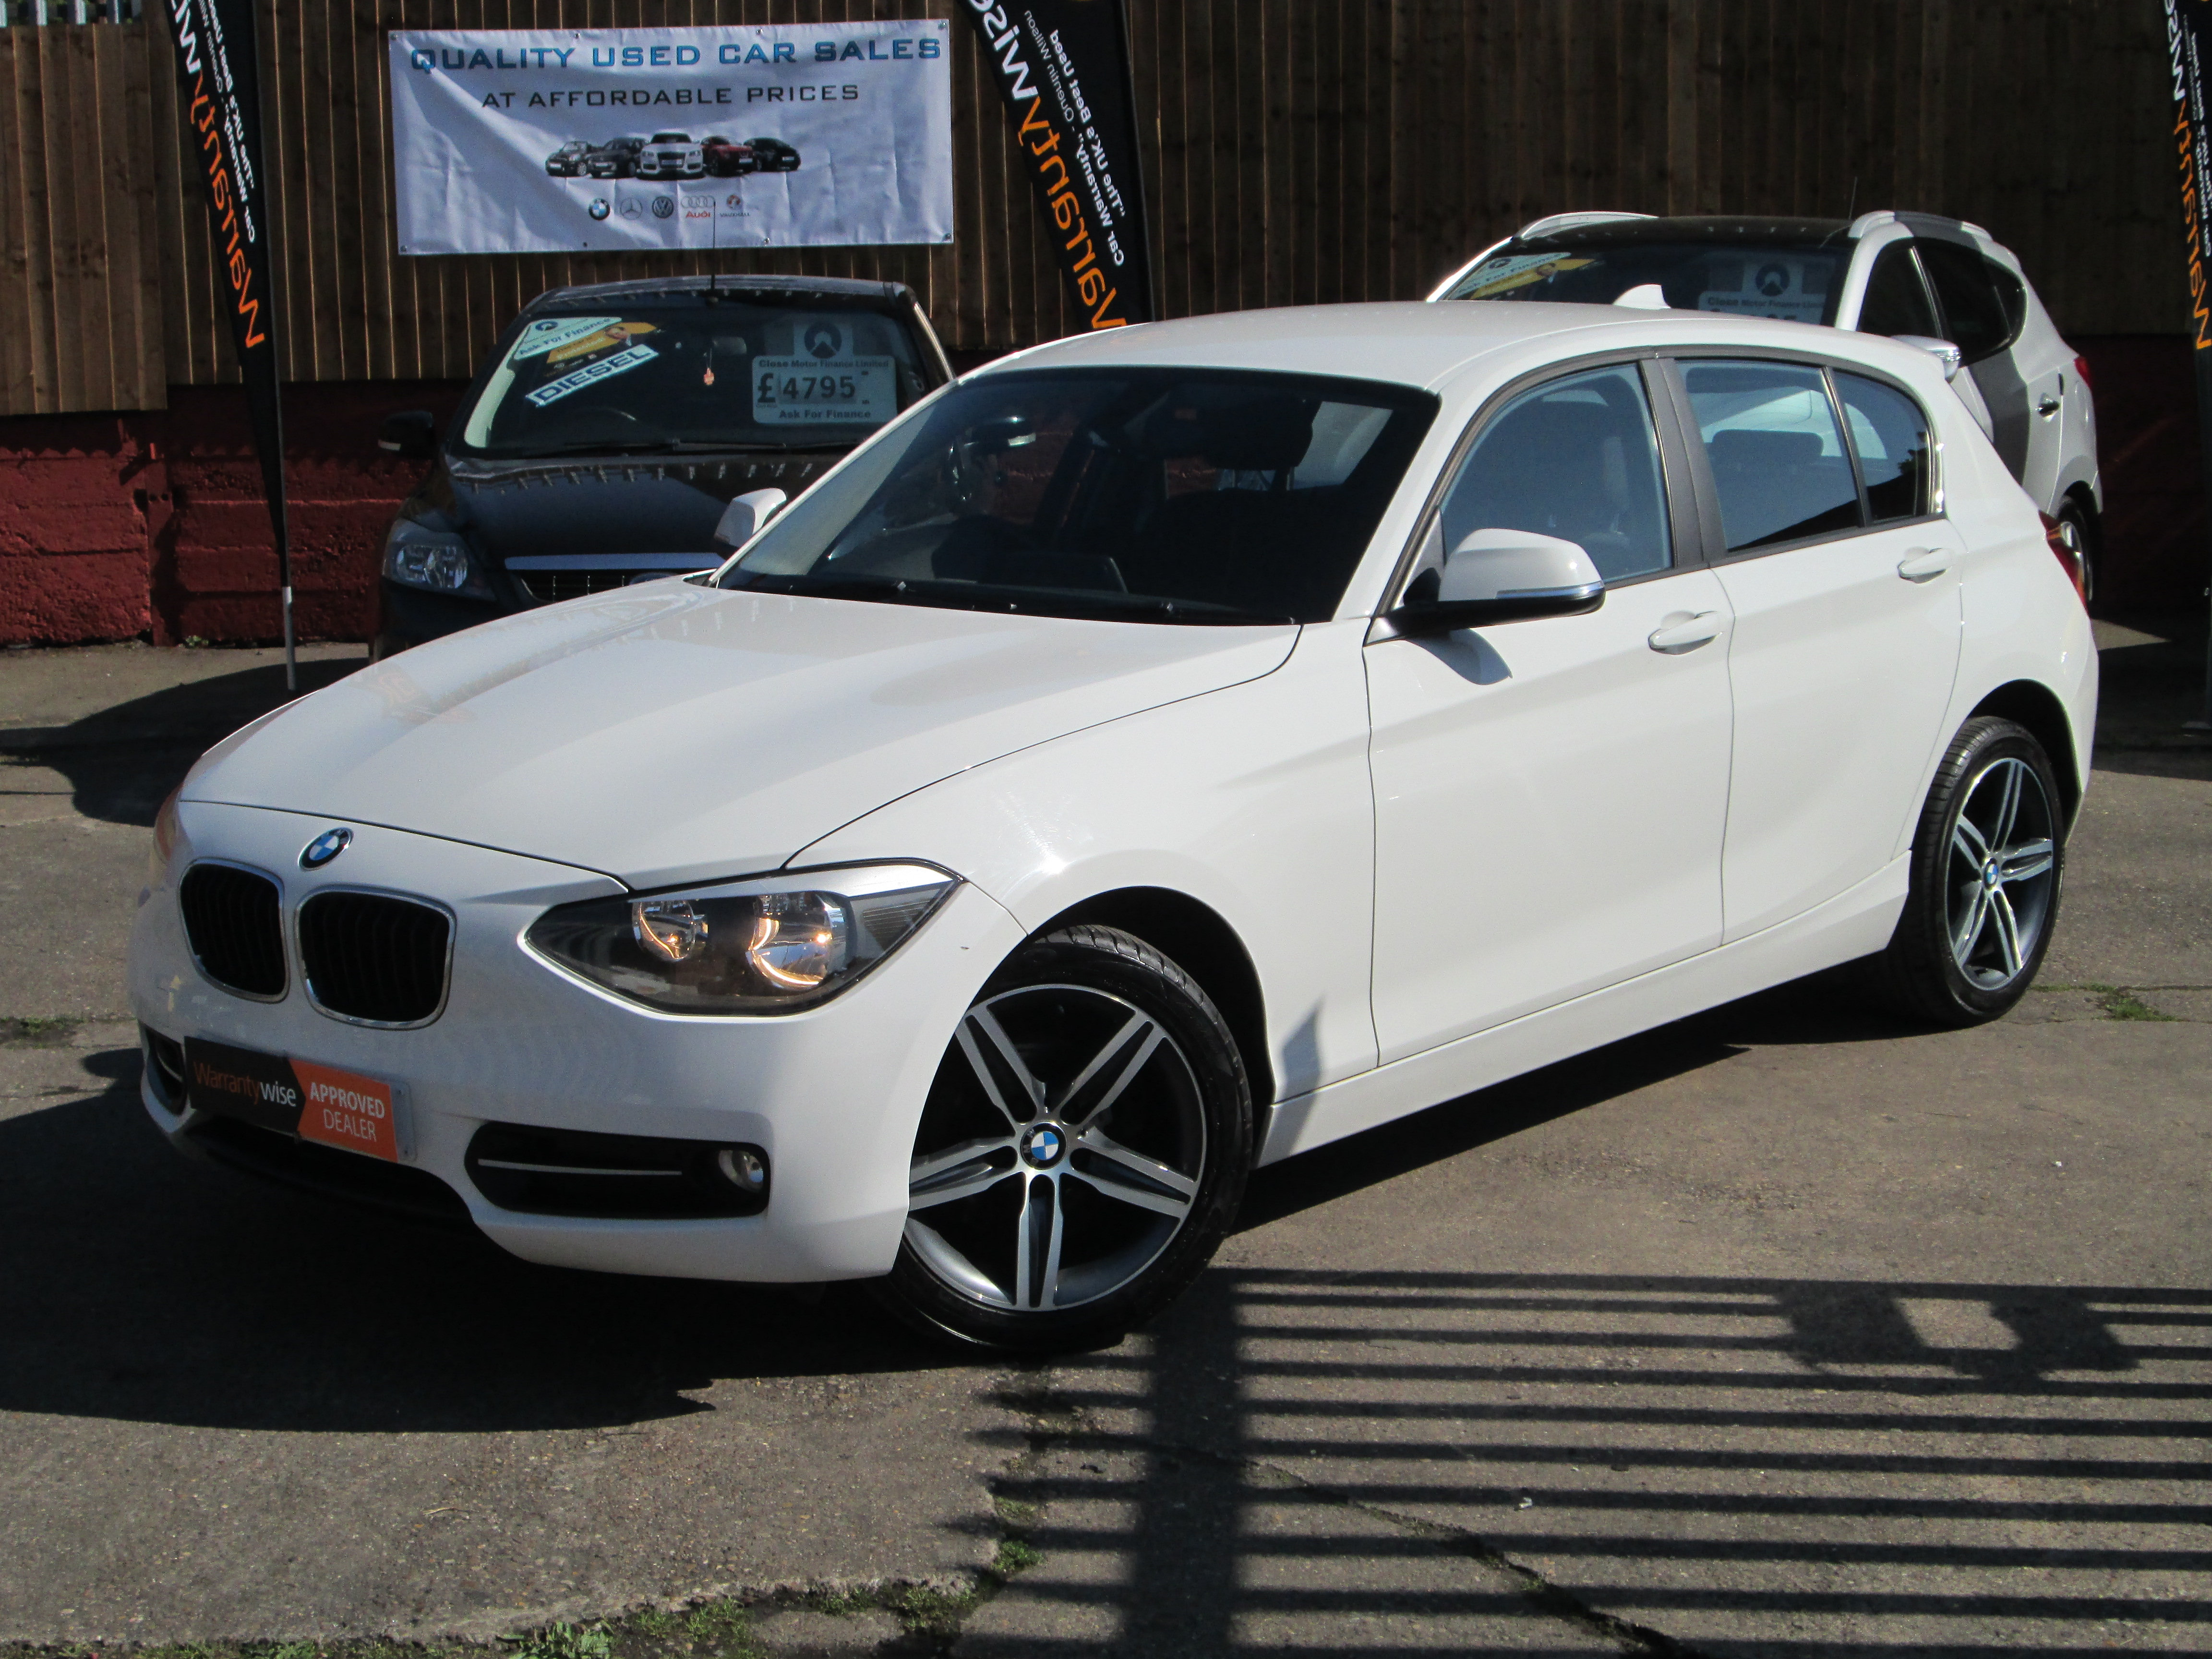 listings al low perfect warranty contract and service condition bmw years mileage tayer